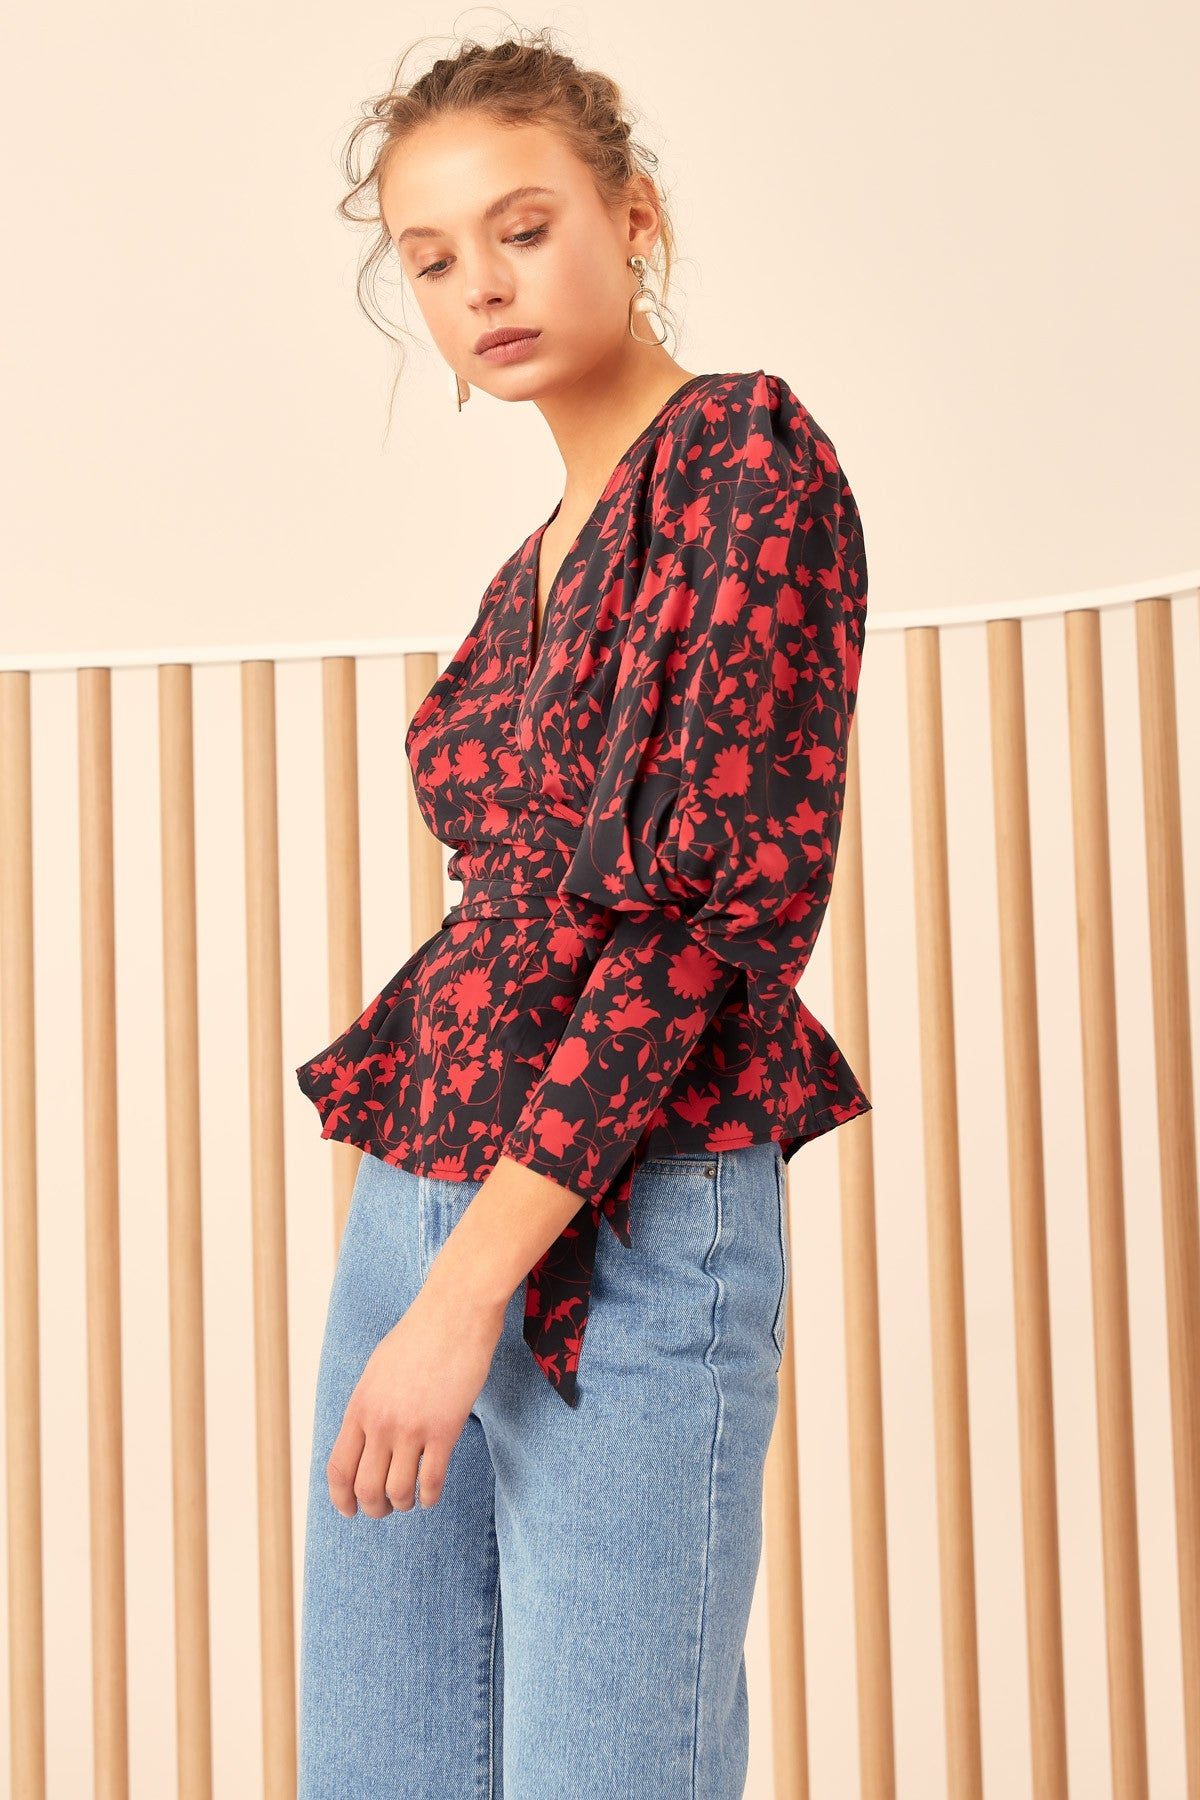 OPACITY TOP black w chilli floral